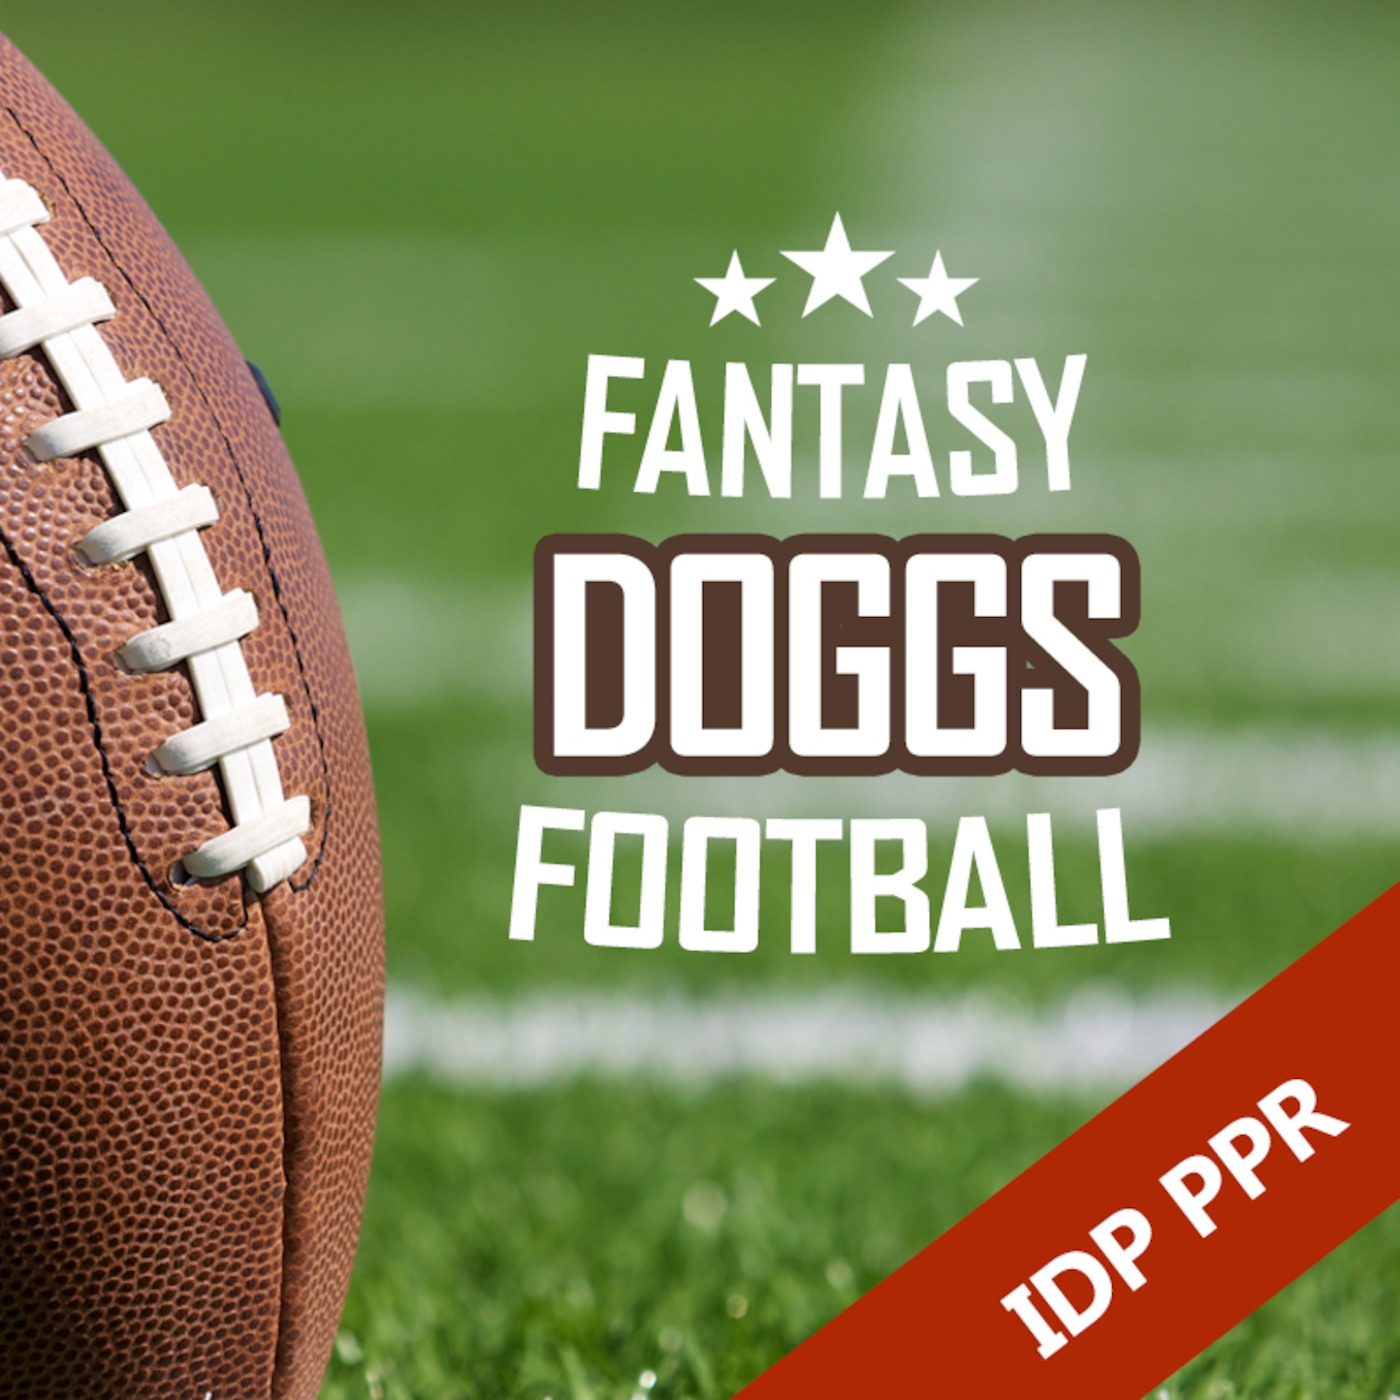 Football Doggs Fantasy Football IDP PPR Podcast